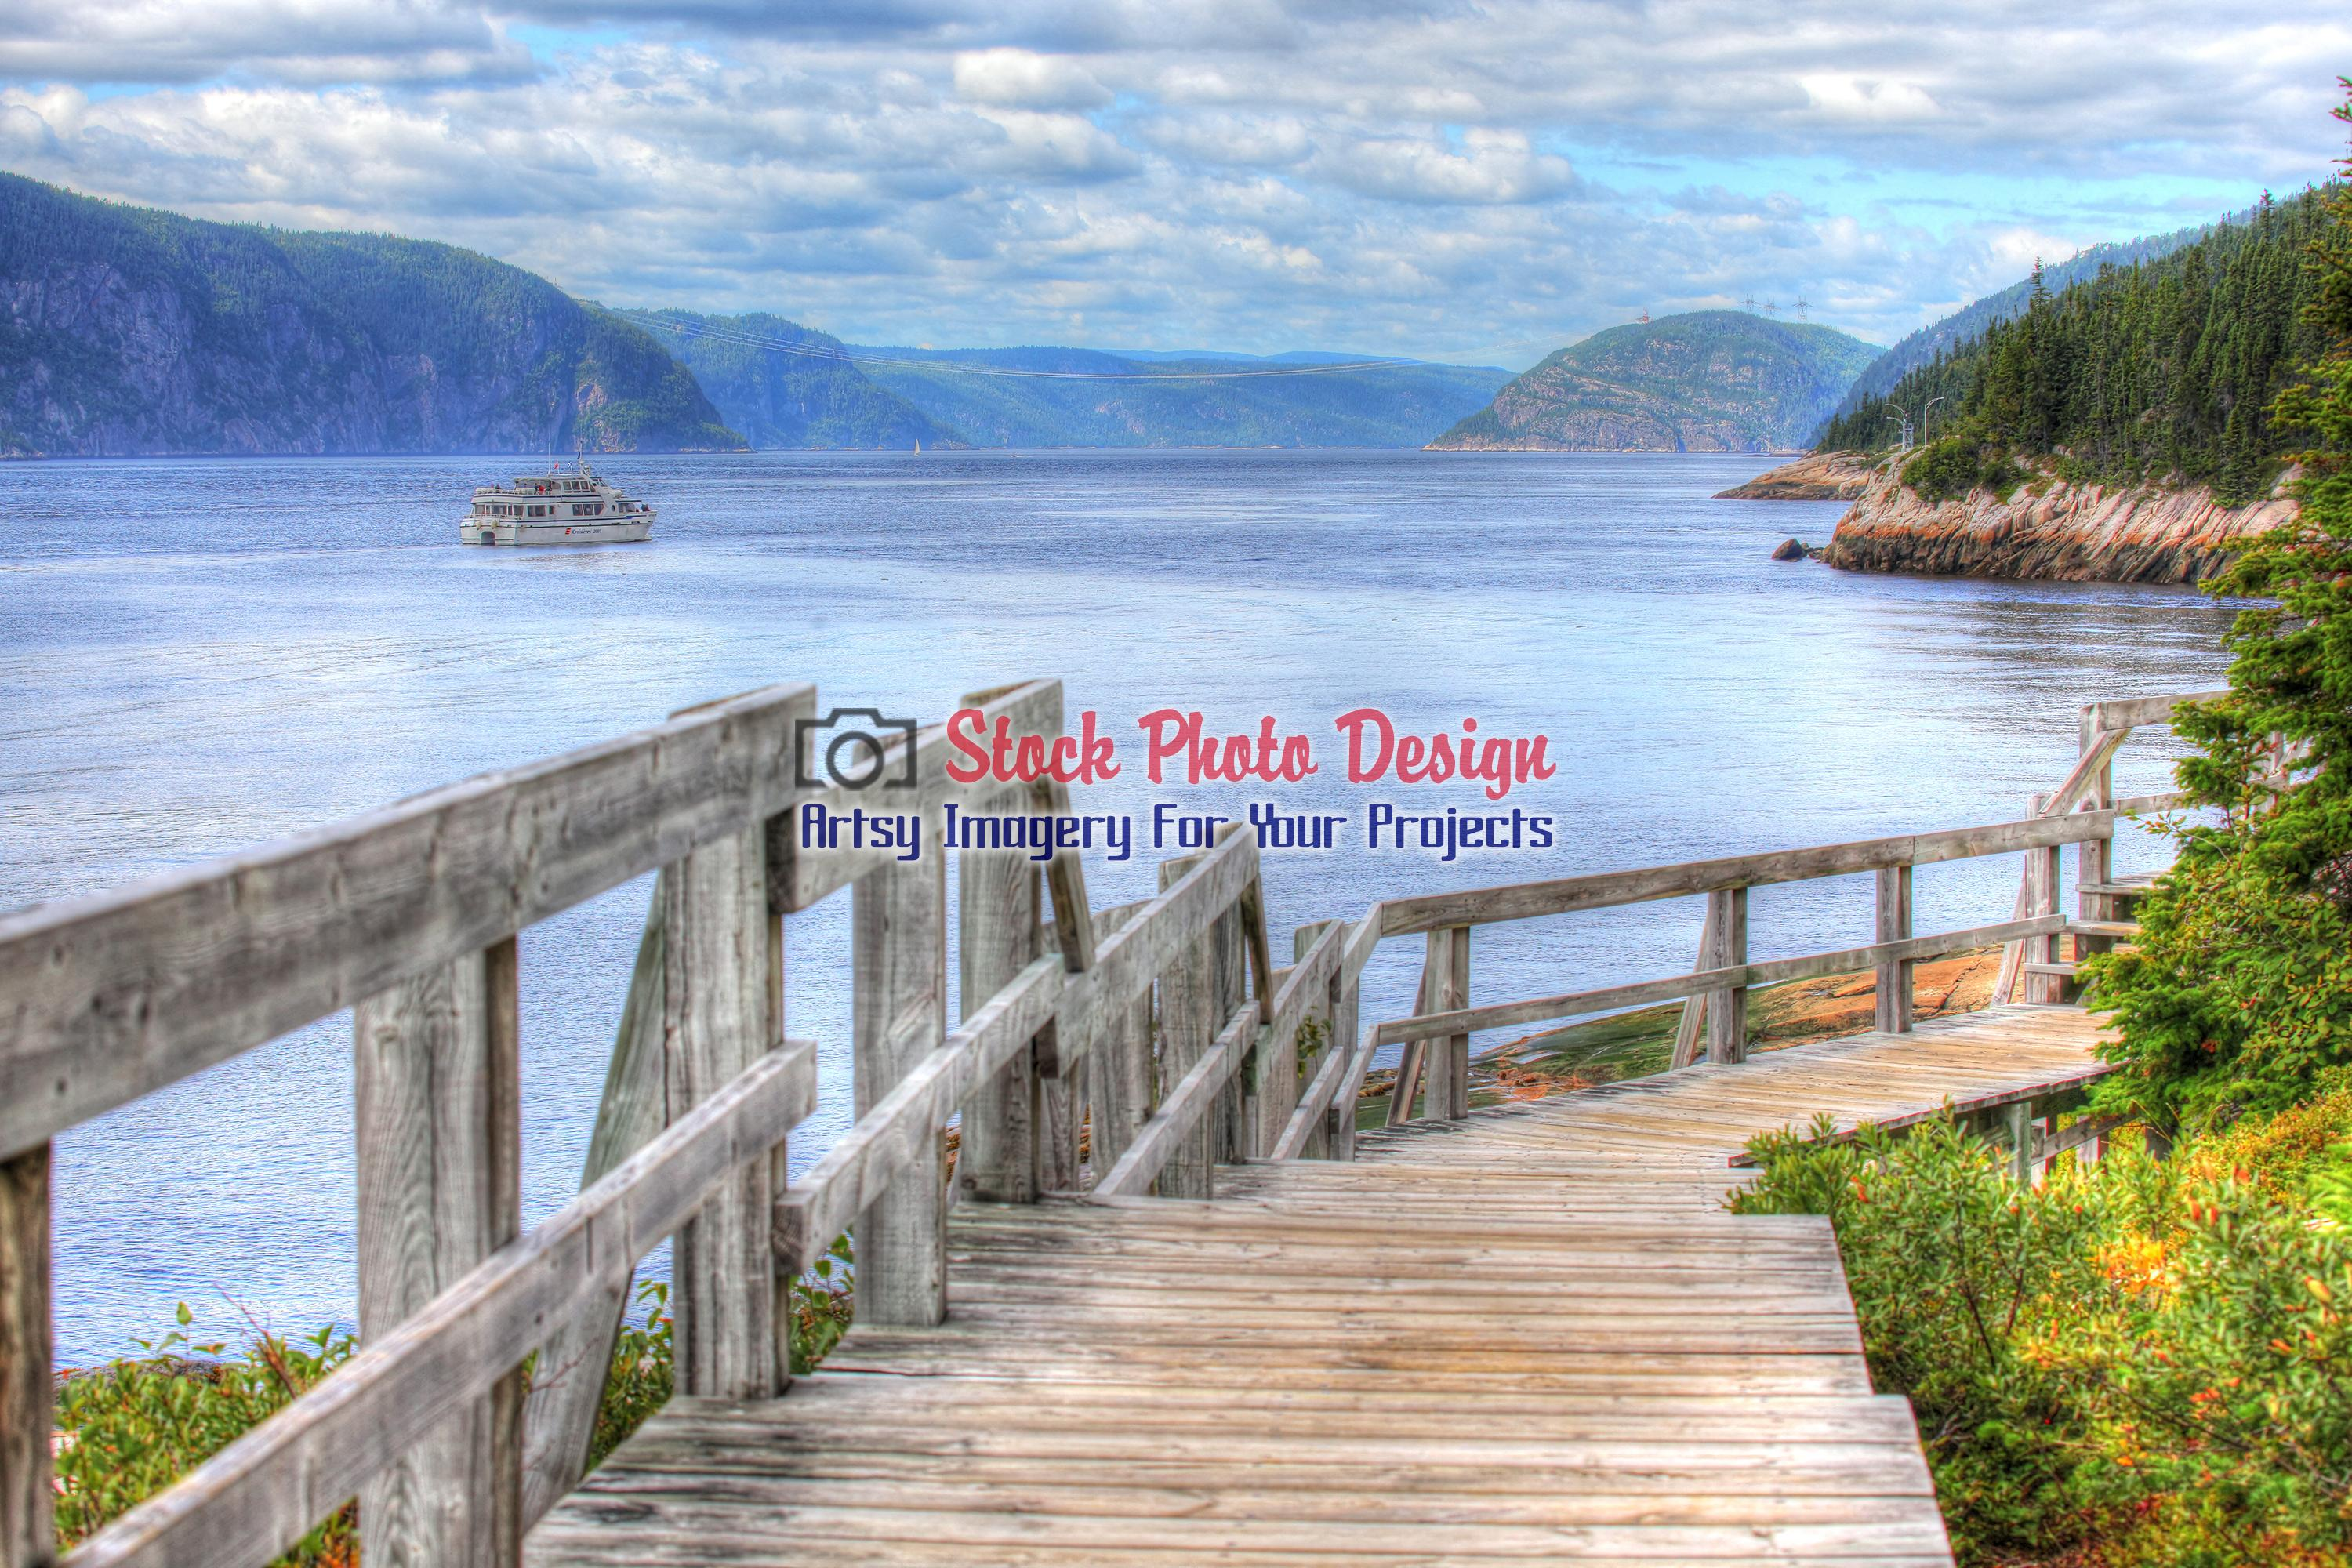 Saguenay River in HDR - Dimensions: 3000 by 2000 pixels